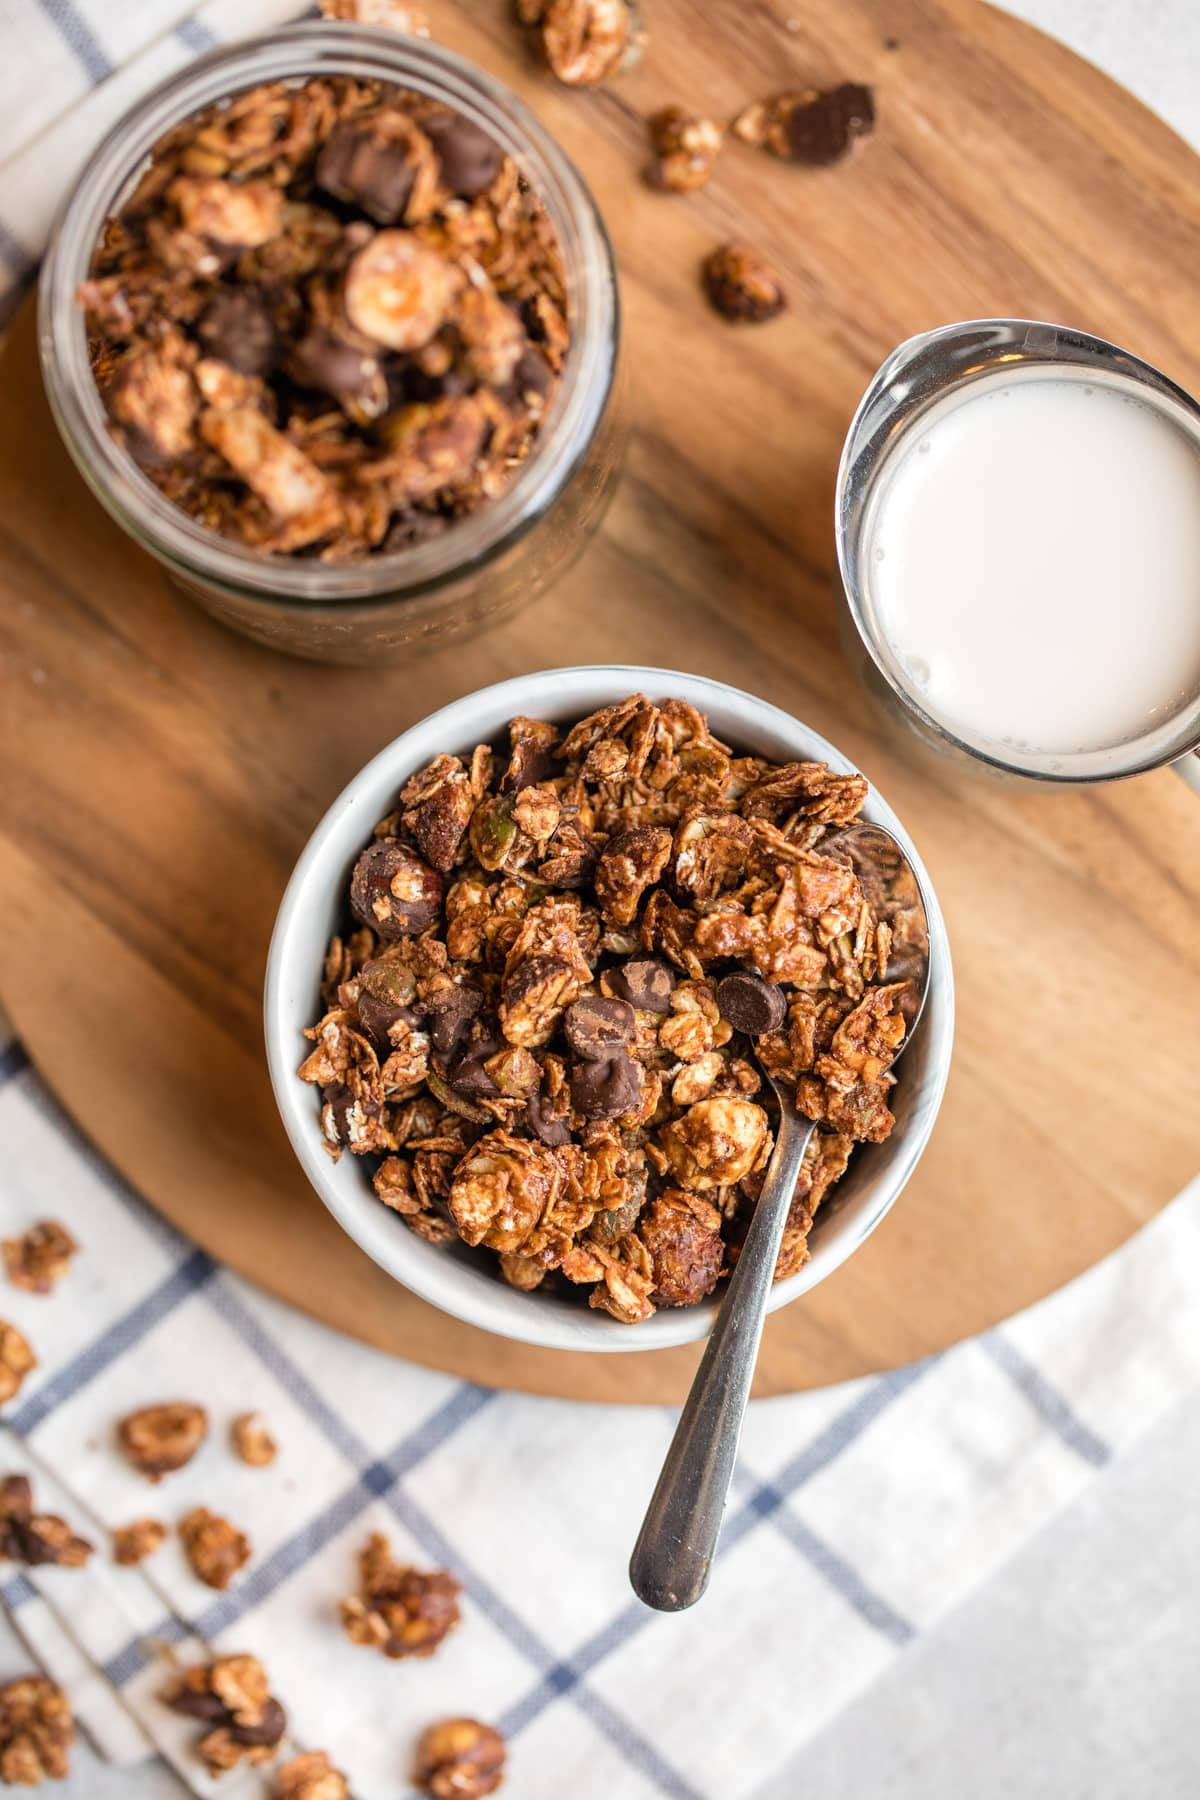 small white bowl filled with chocolate hazelnut granola on round wood cutting board